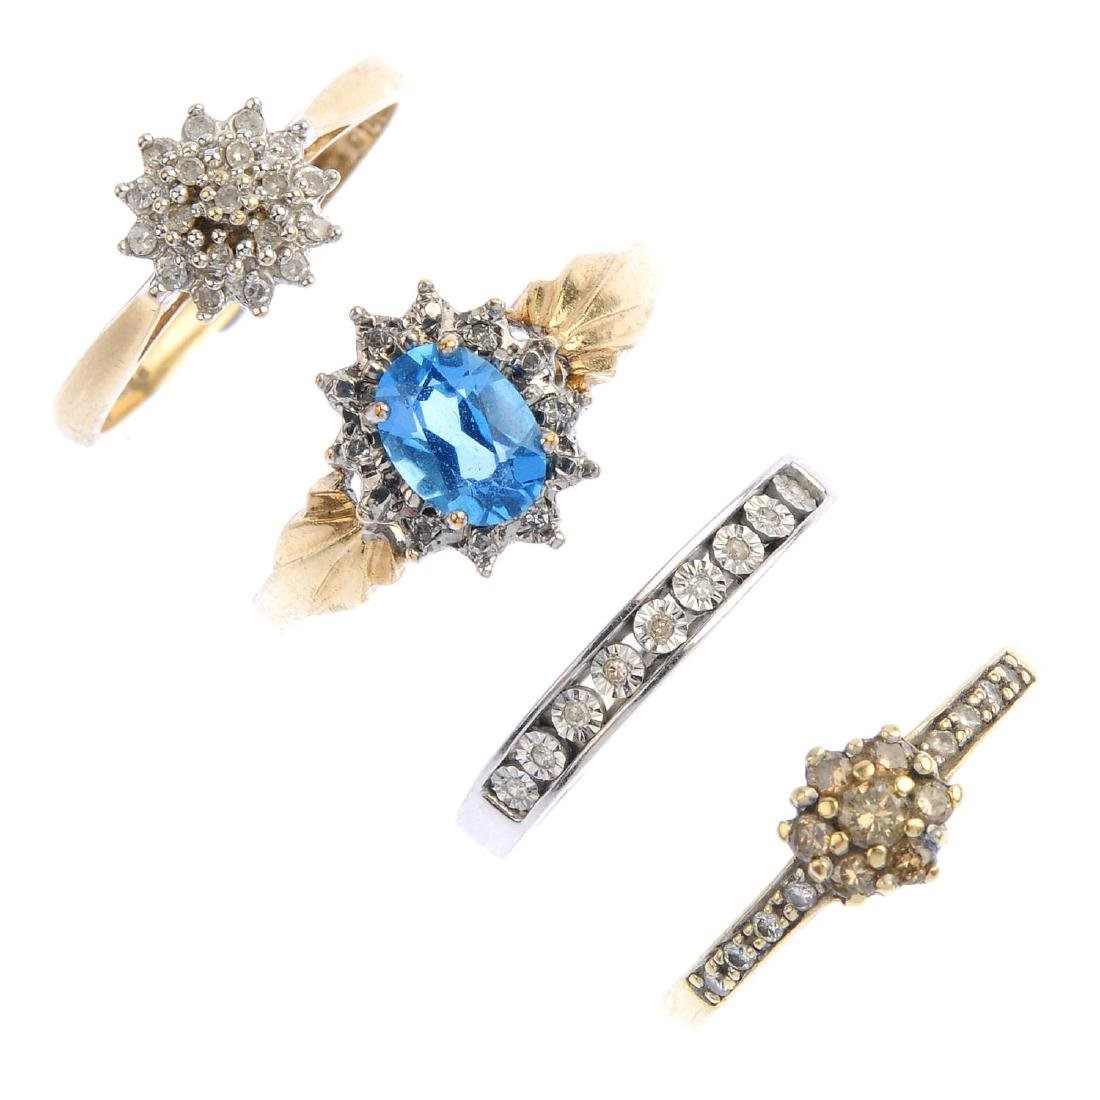 Four 9ct gold diamond gem-set dress rings. To include a